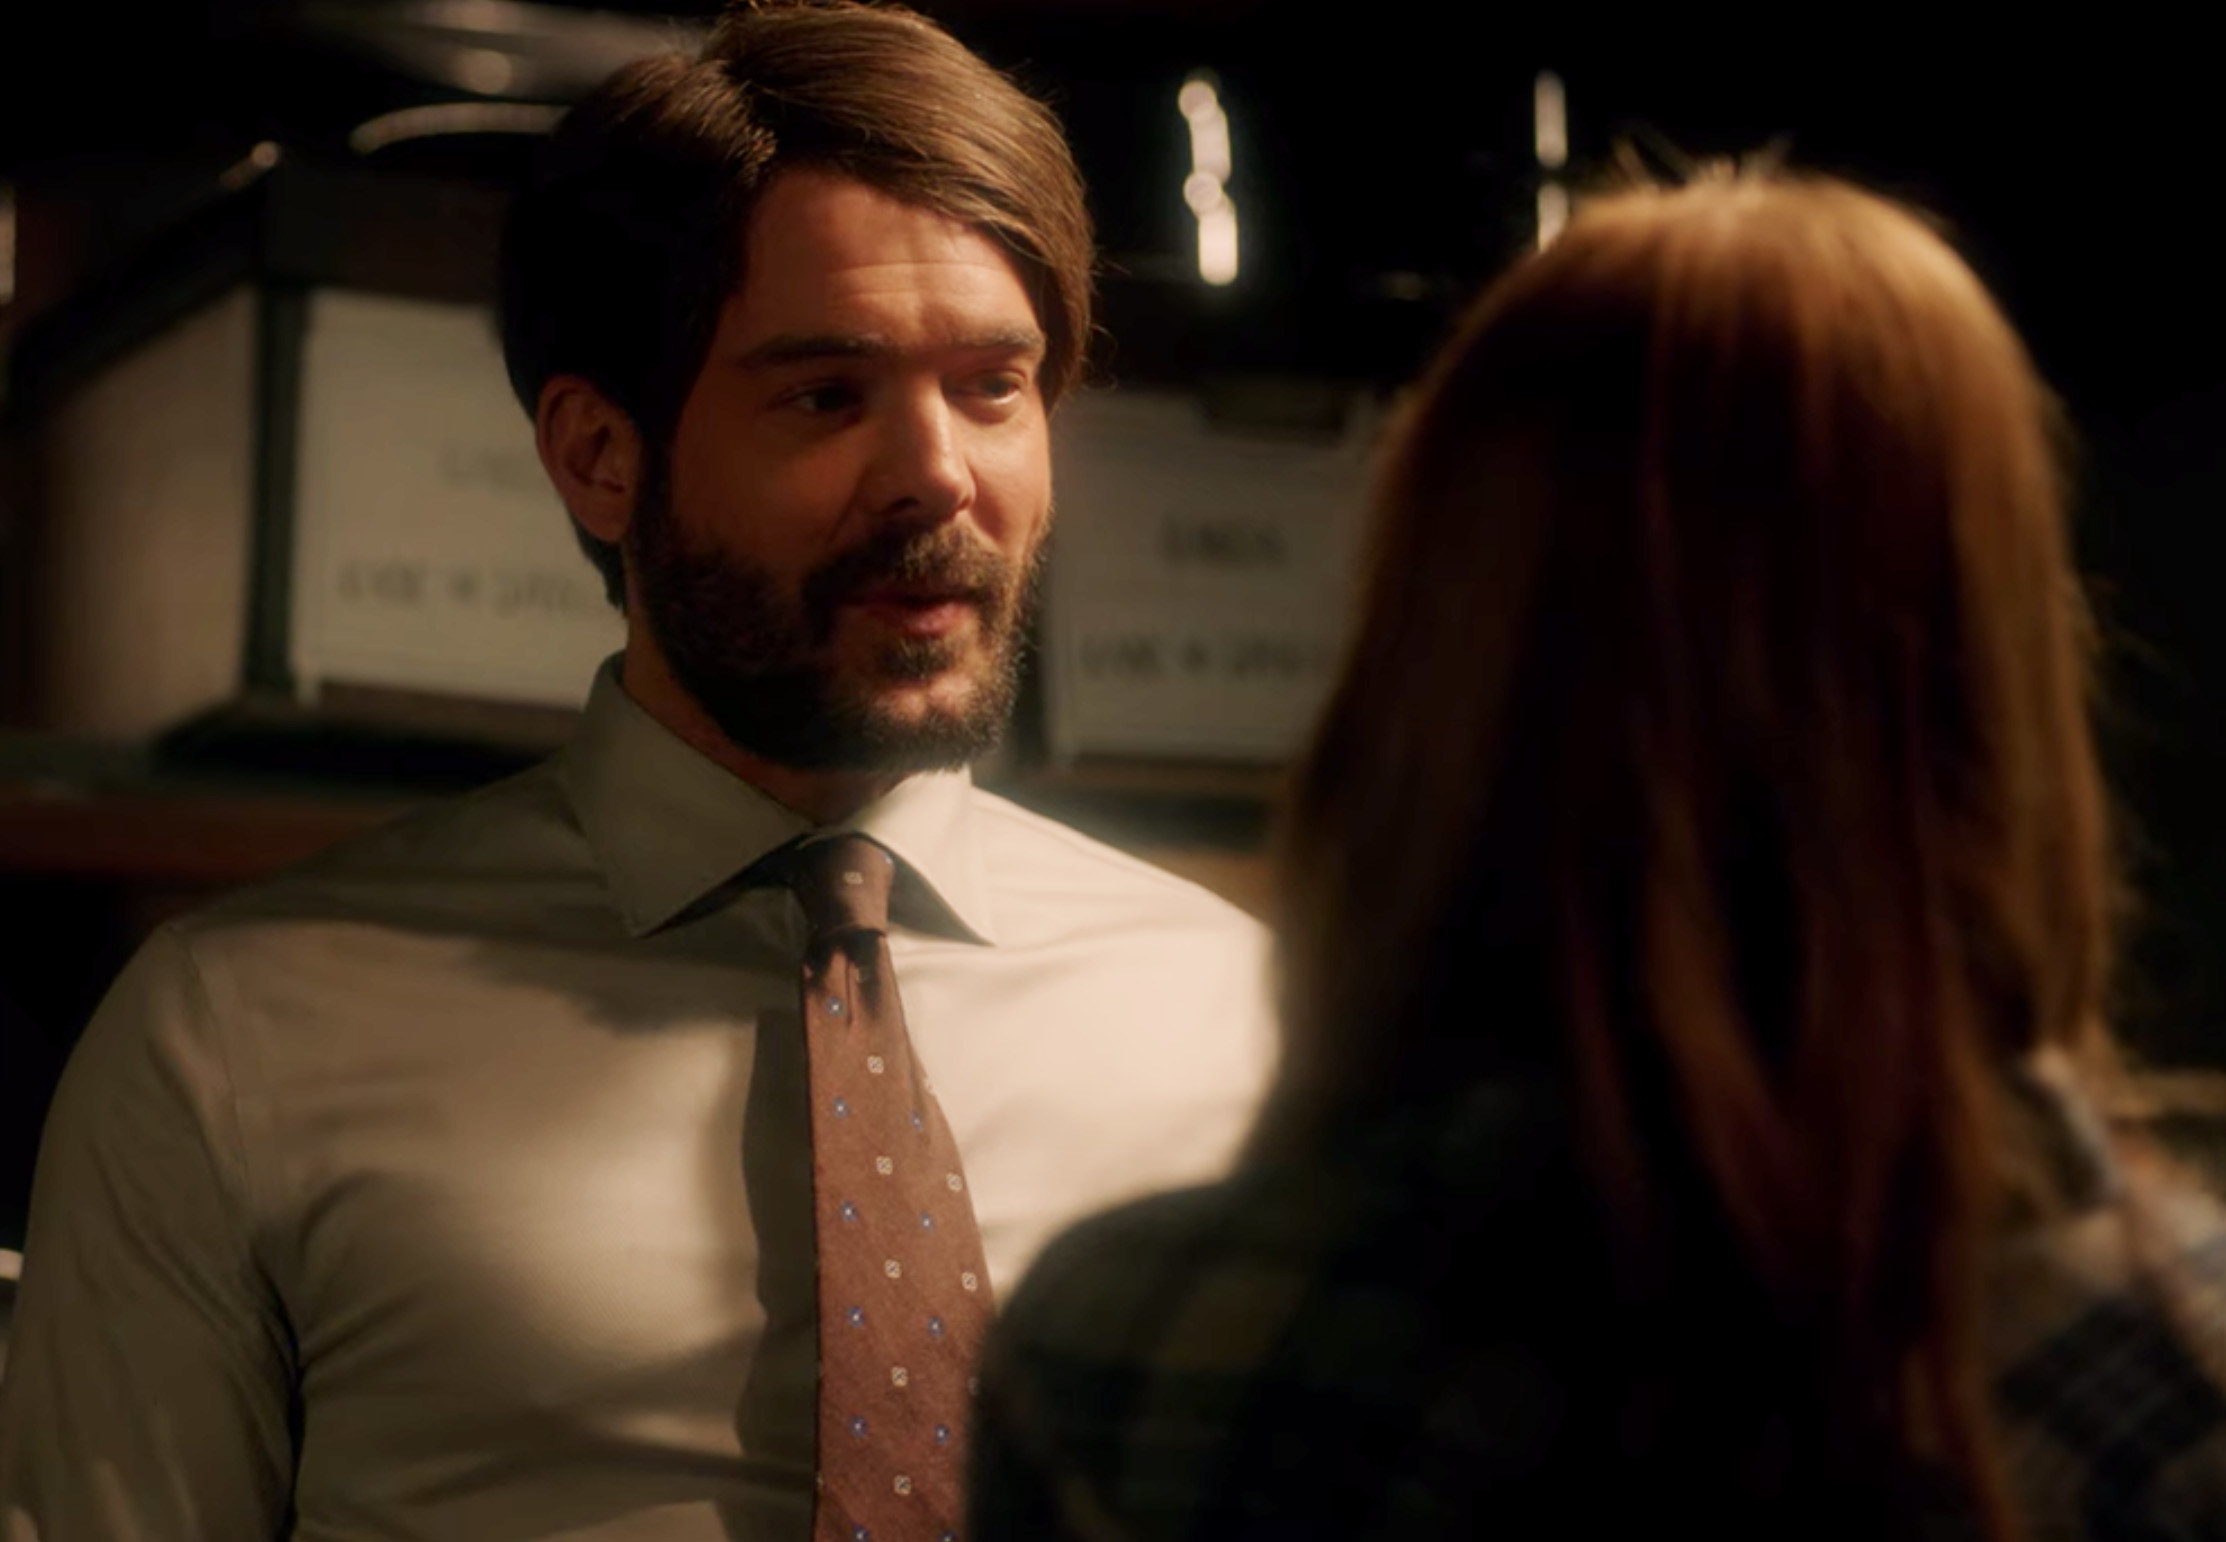 Charlie Weber in an obvious wig